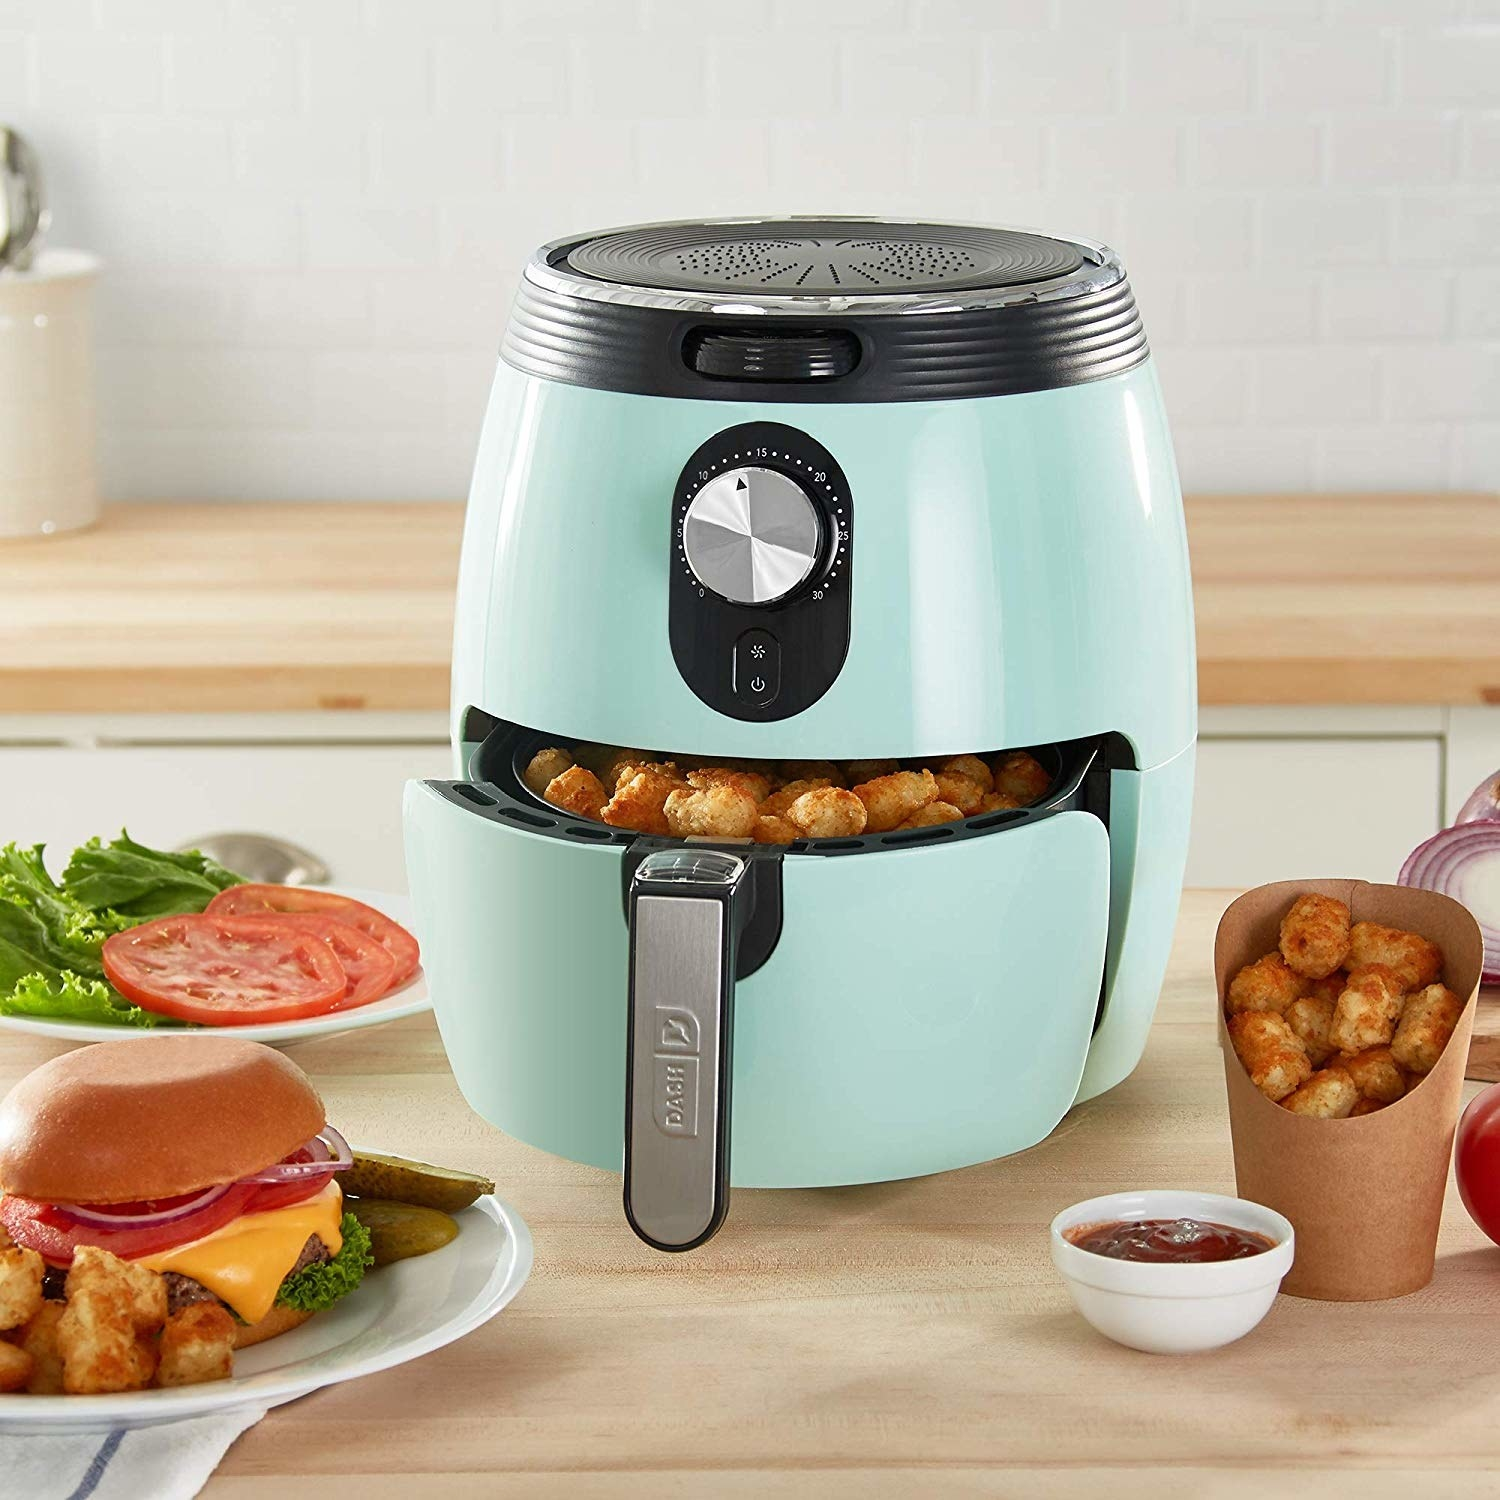 a teal air fryer making tater tots